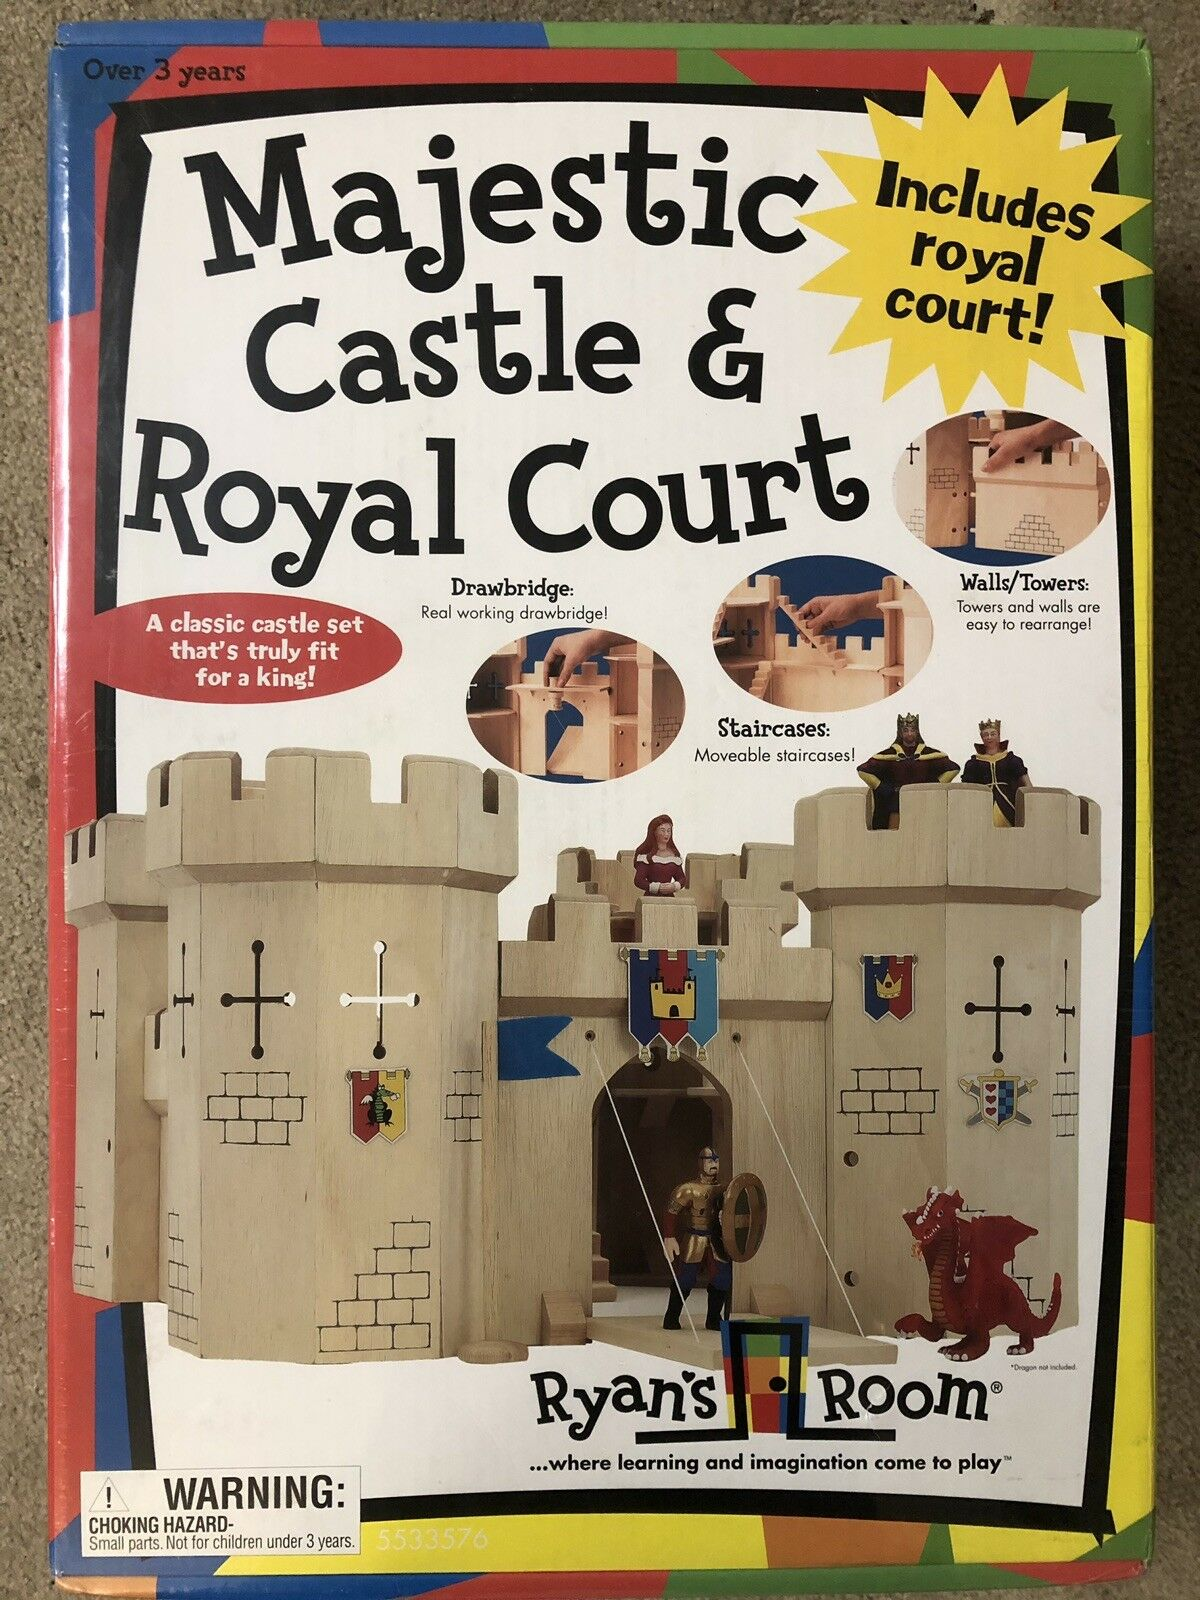 NEW Ryan's Room Majestic Castle & Royal Court